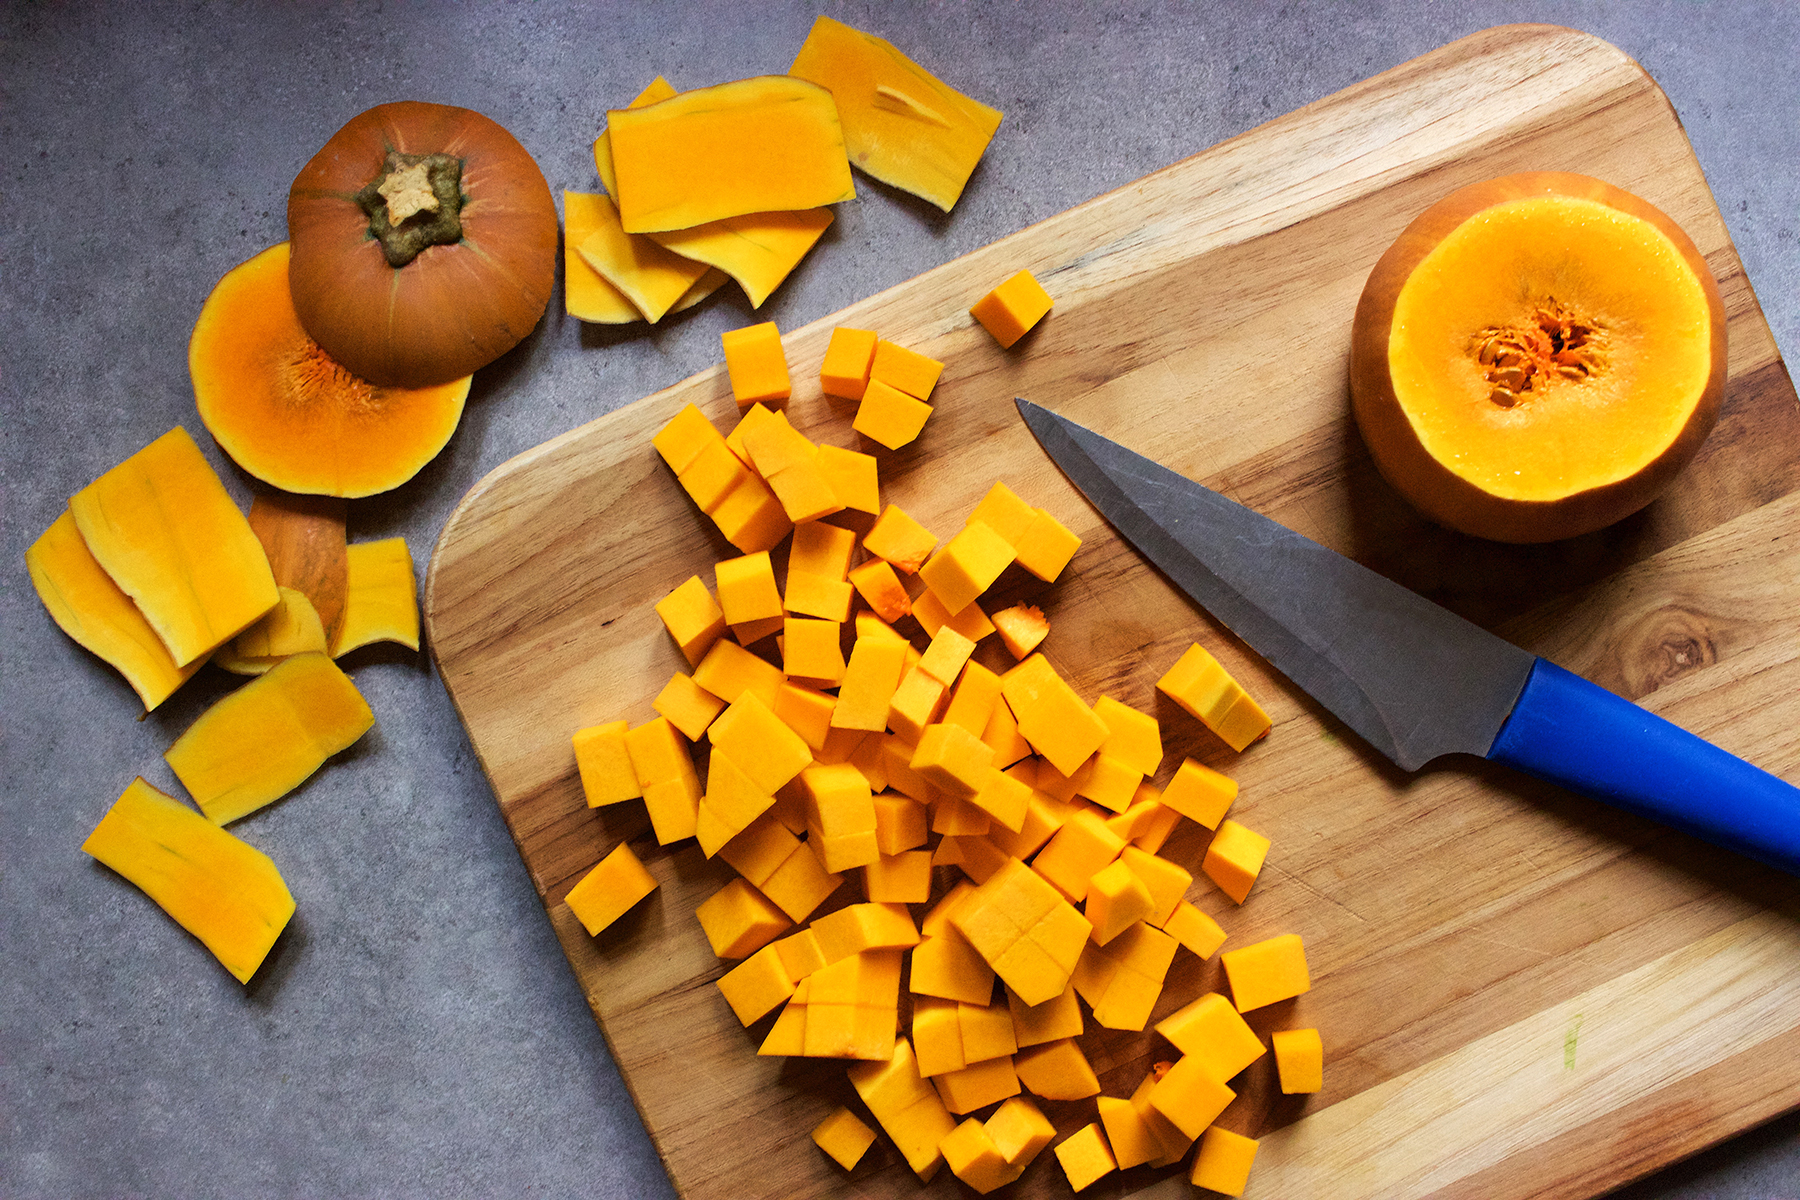 <p>In a home kitchen, a butternut squash is being peeled and chopped into cubes on a wooden cutting board with a knife with a blue handle. Fresh vegetables, from-scratch cooking, nutrition, healthy eating.</p>